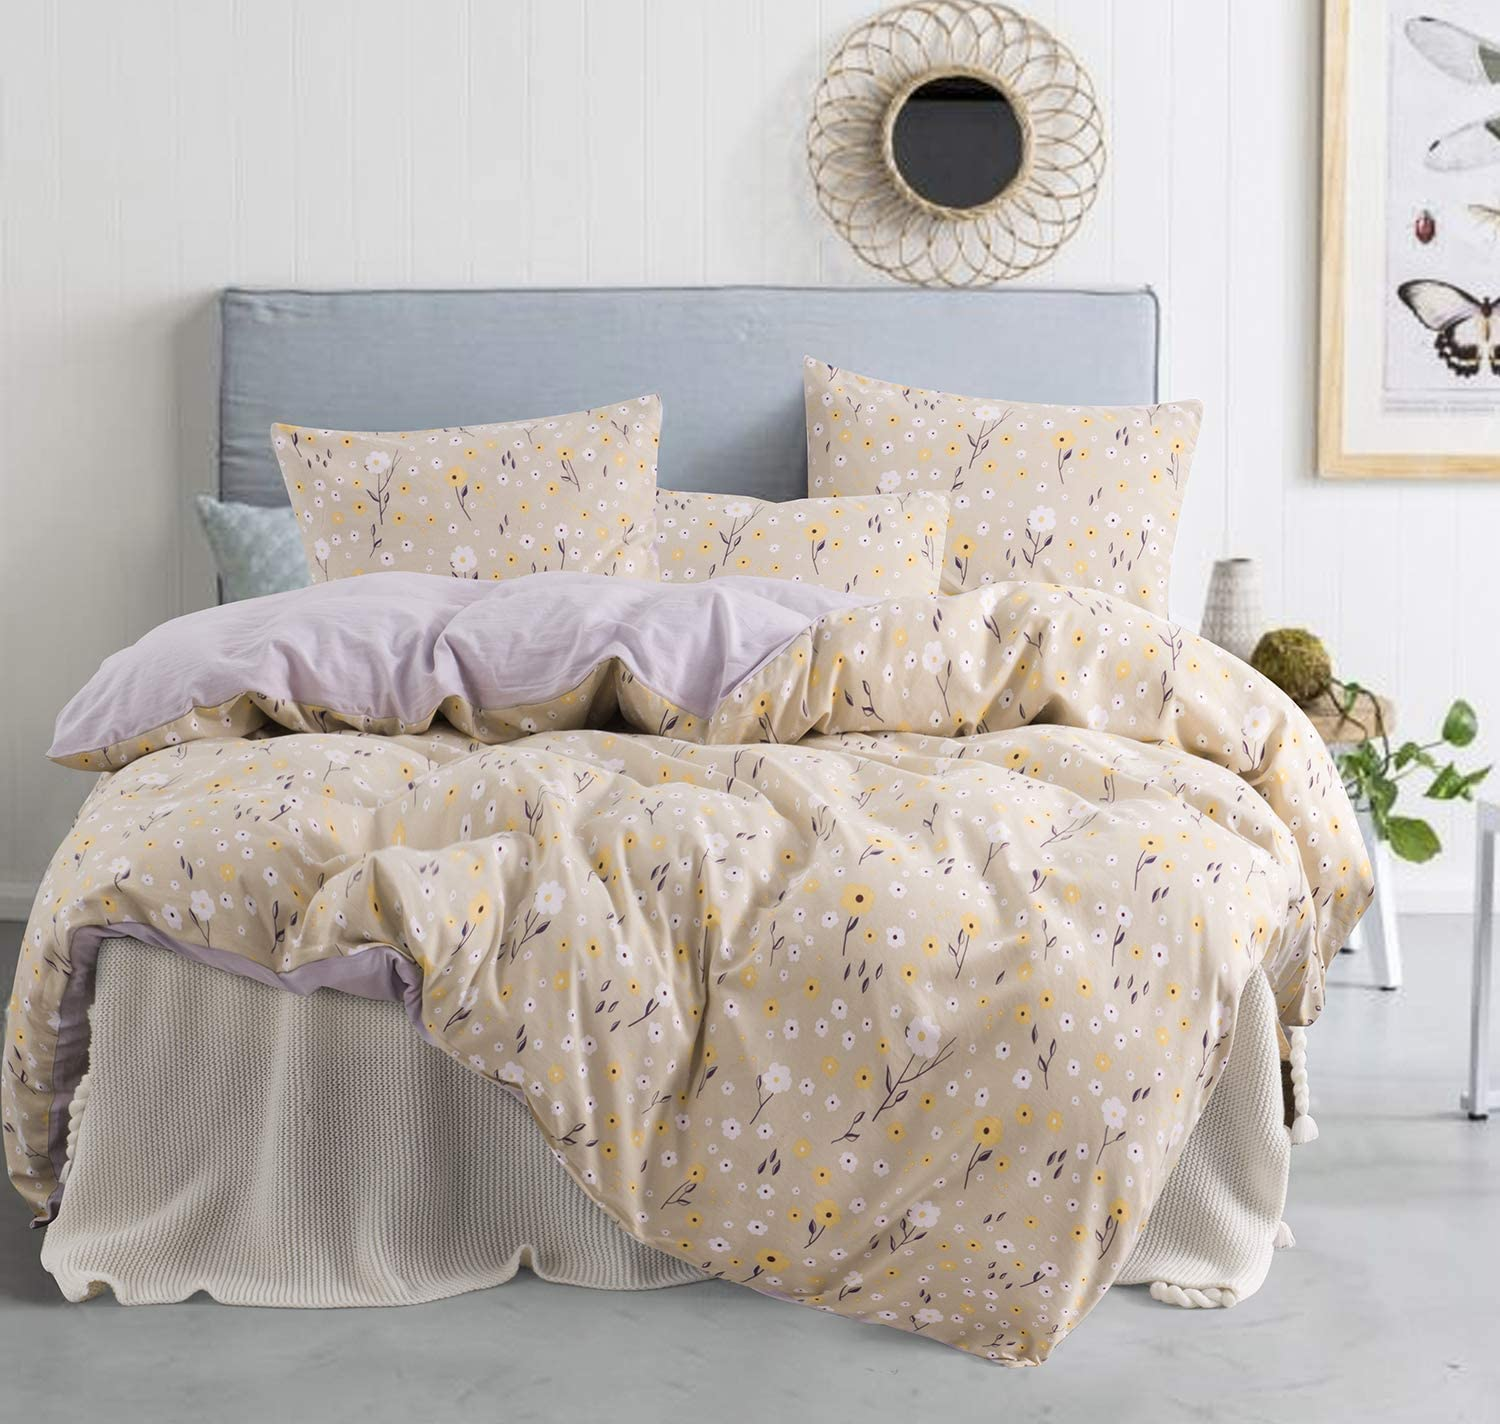 jieshiling King 5 ☆ very popular Duvet Cover Soft Set All items free shipping Cute Bedding Lightwei with